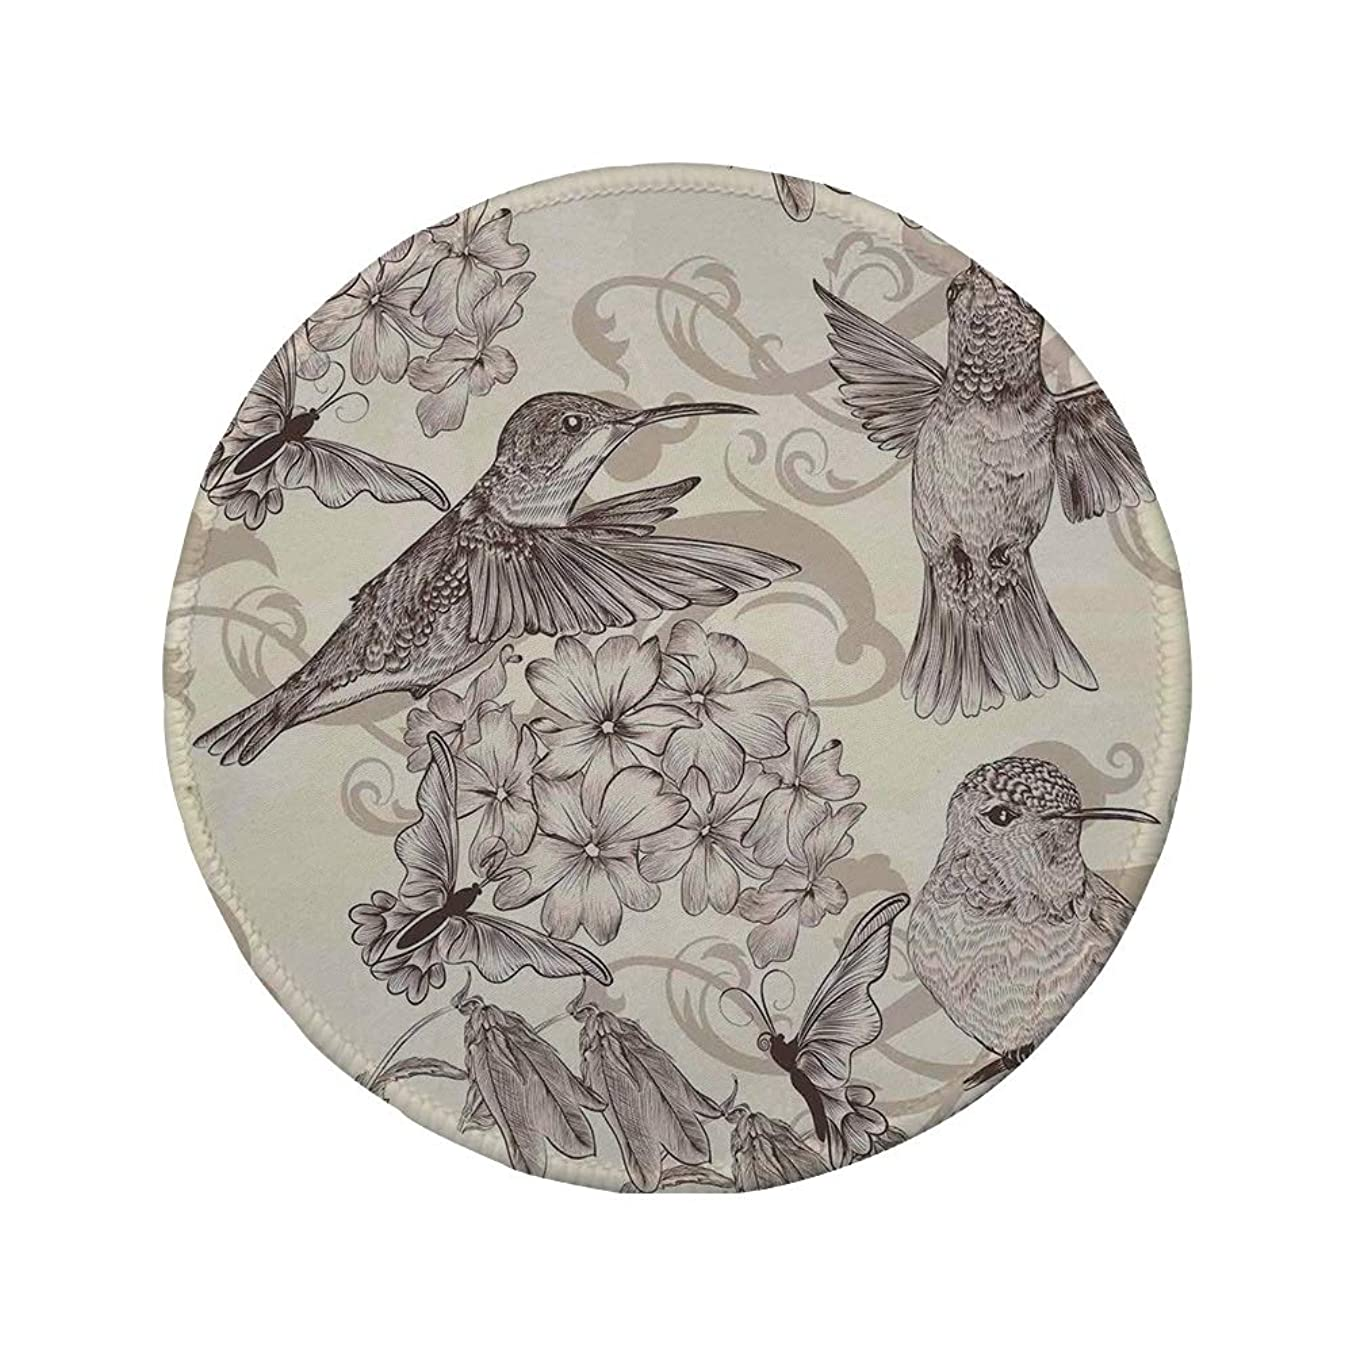 Non-Slip Rubber Round Mouse Pad,Hummingbirds Decor,Birds and Flowers Monochromic Classical Design Nostalgia Ornate Festive,11.8